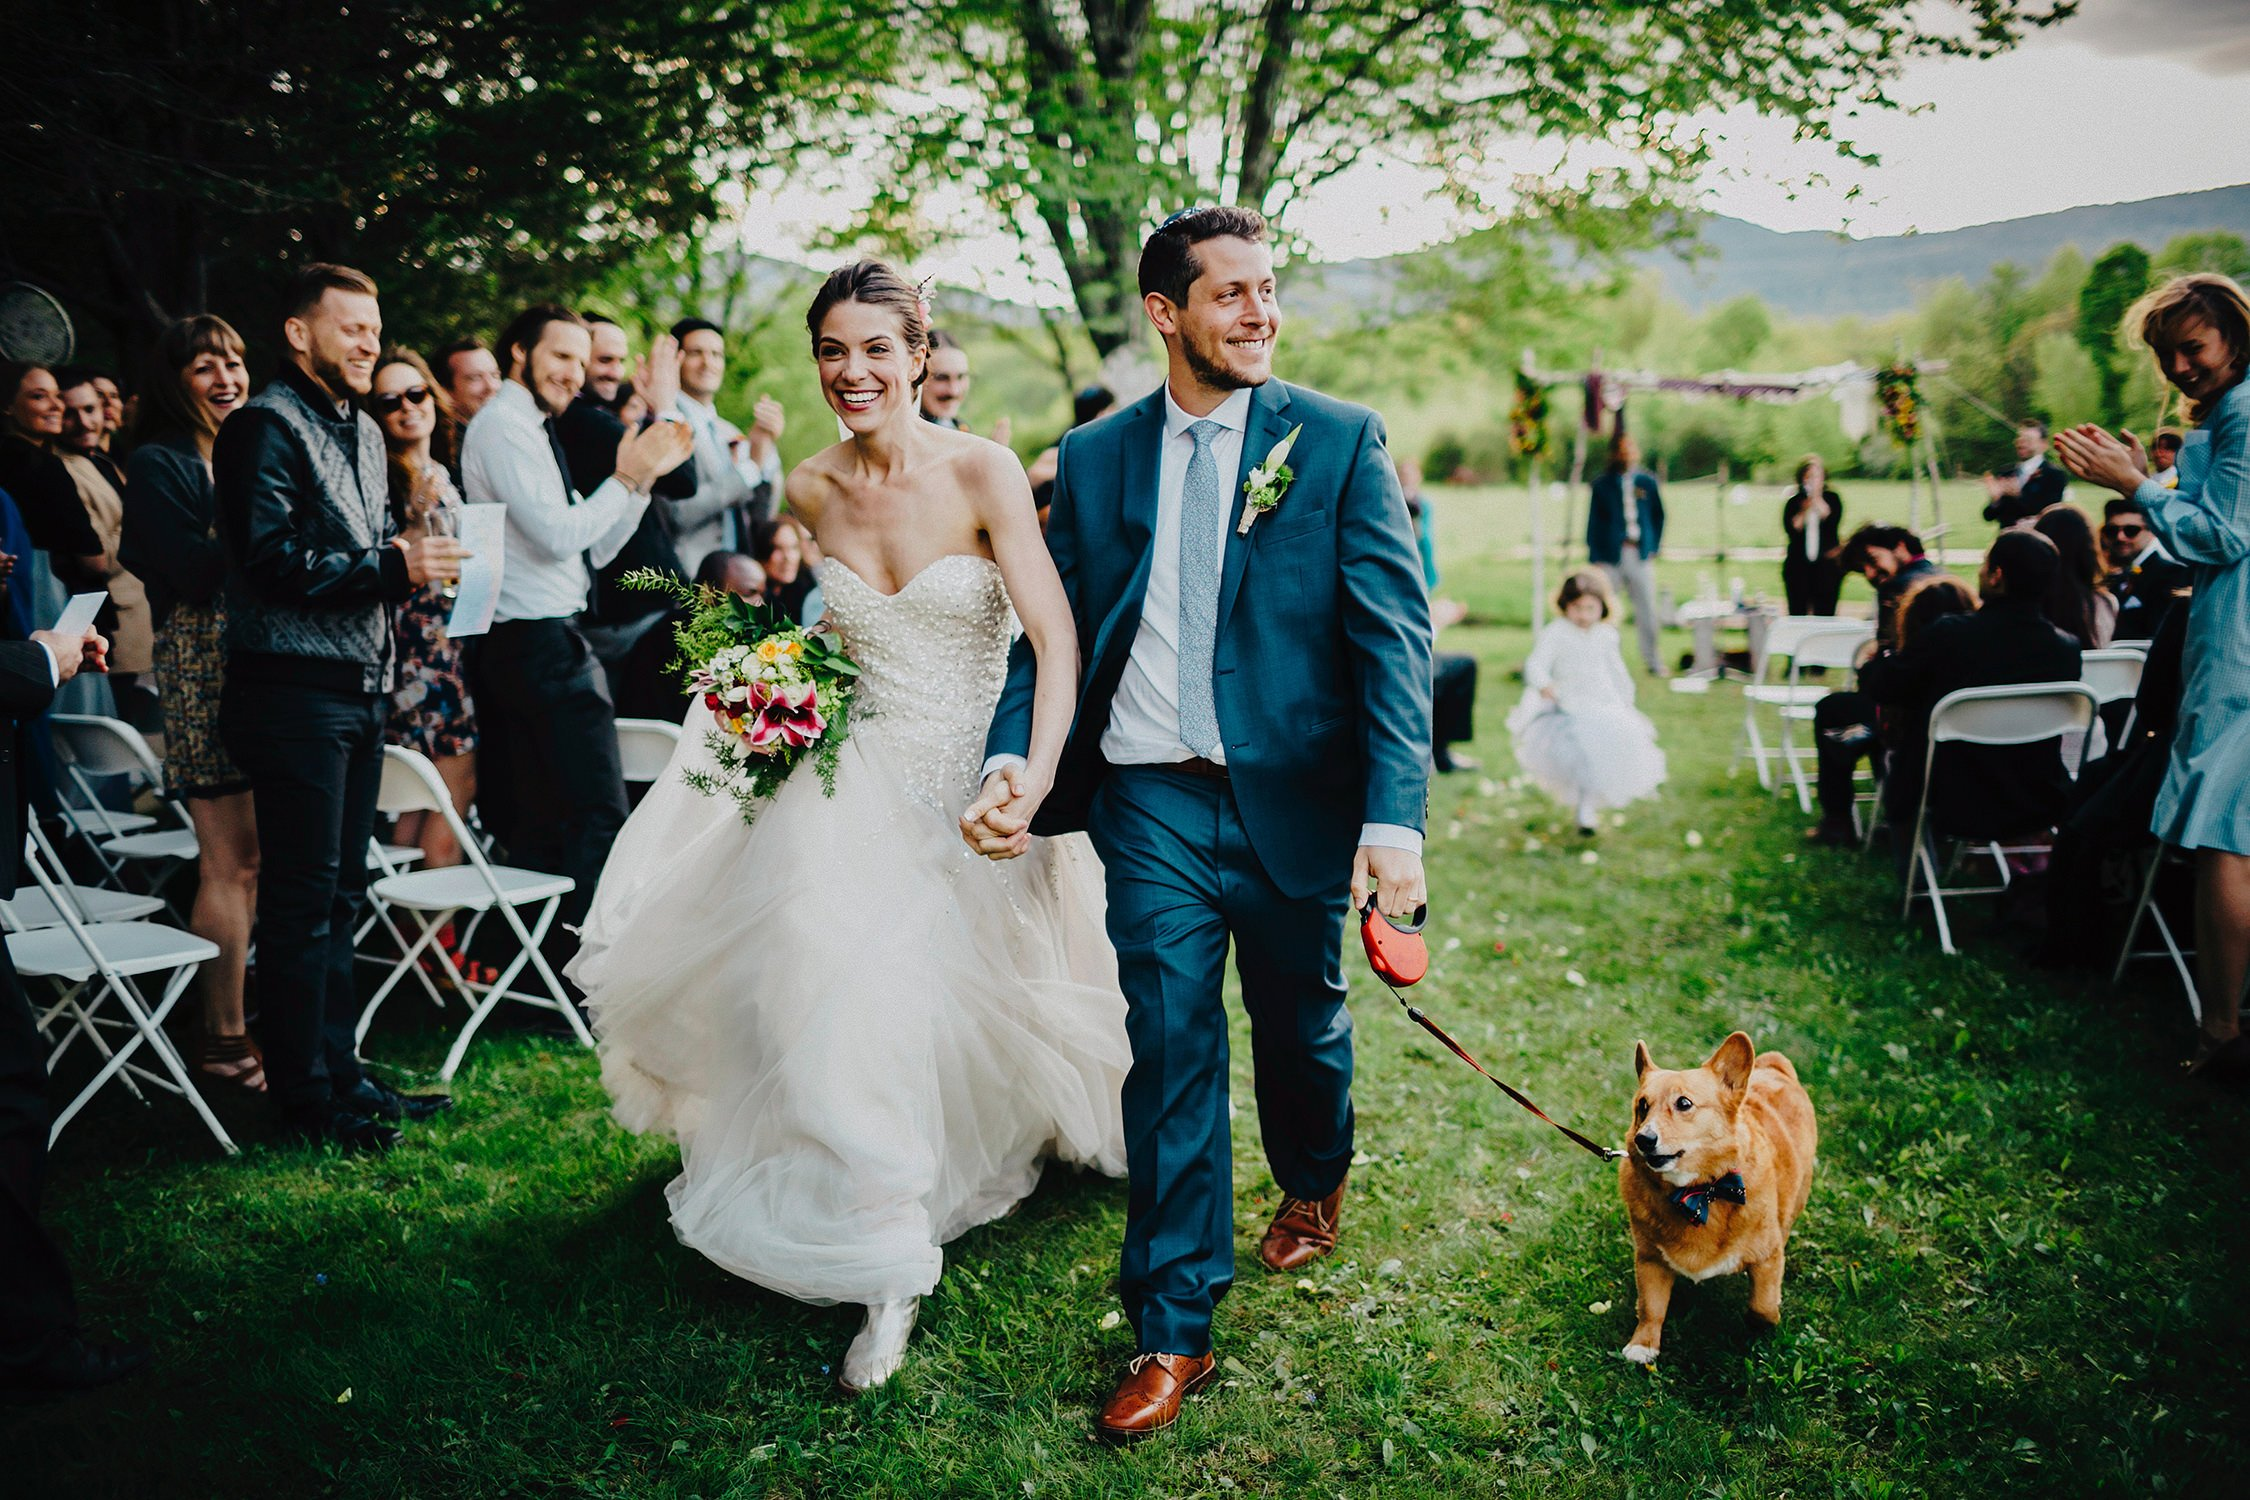 Kayti jake a spring wedding in the catskills the kaaterskill kayti jake wedding junglespirit Choice Image